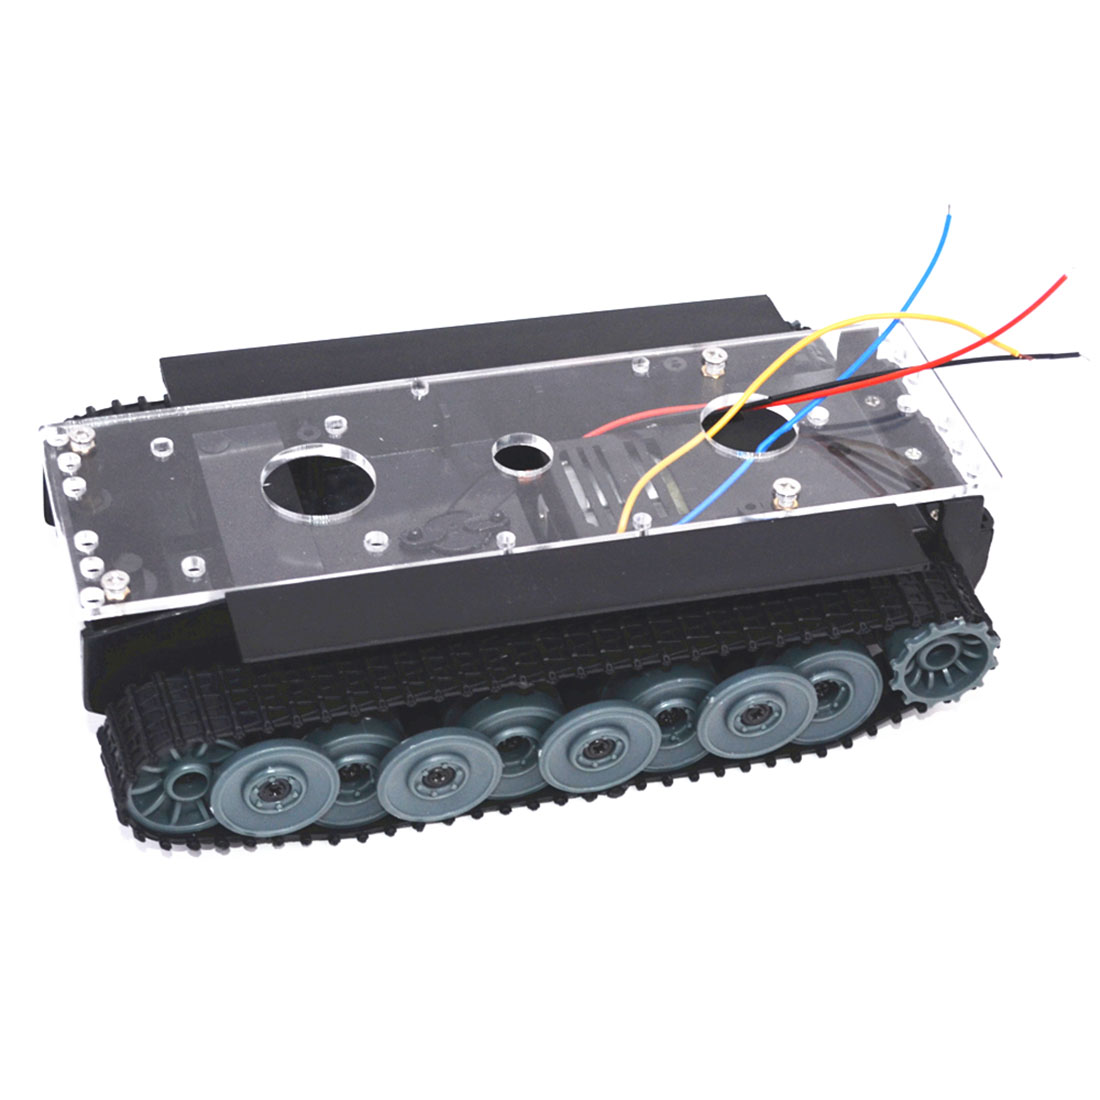 1:32 Tank Track Chassis Robot Chassis Smart Car Chassis For Arduino